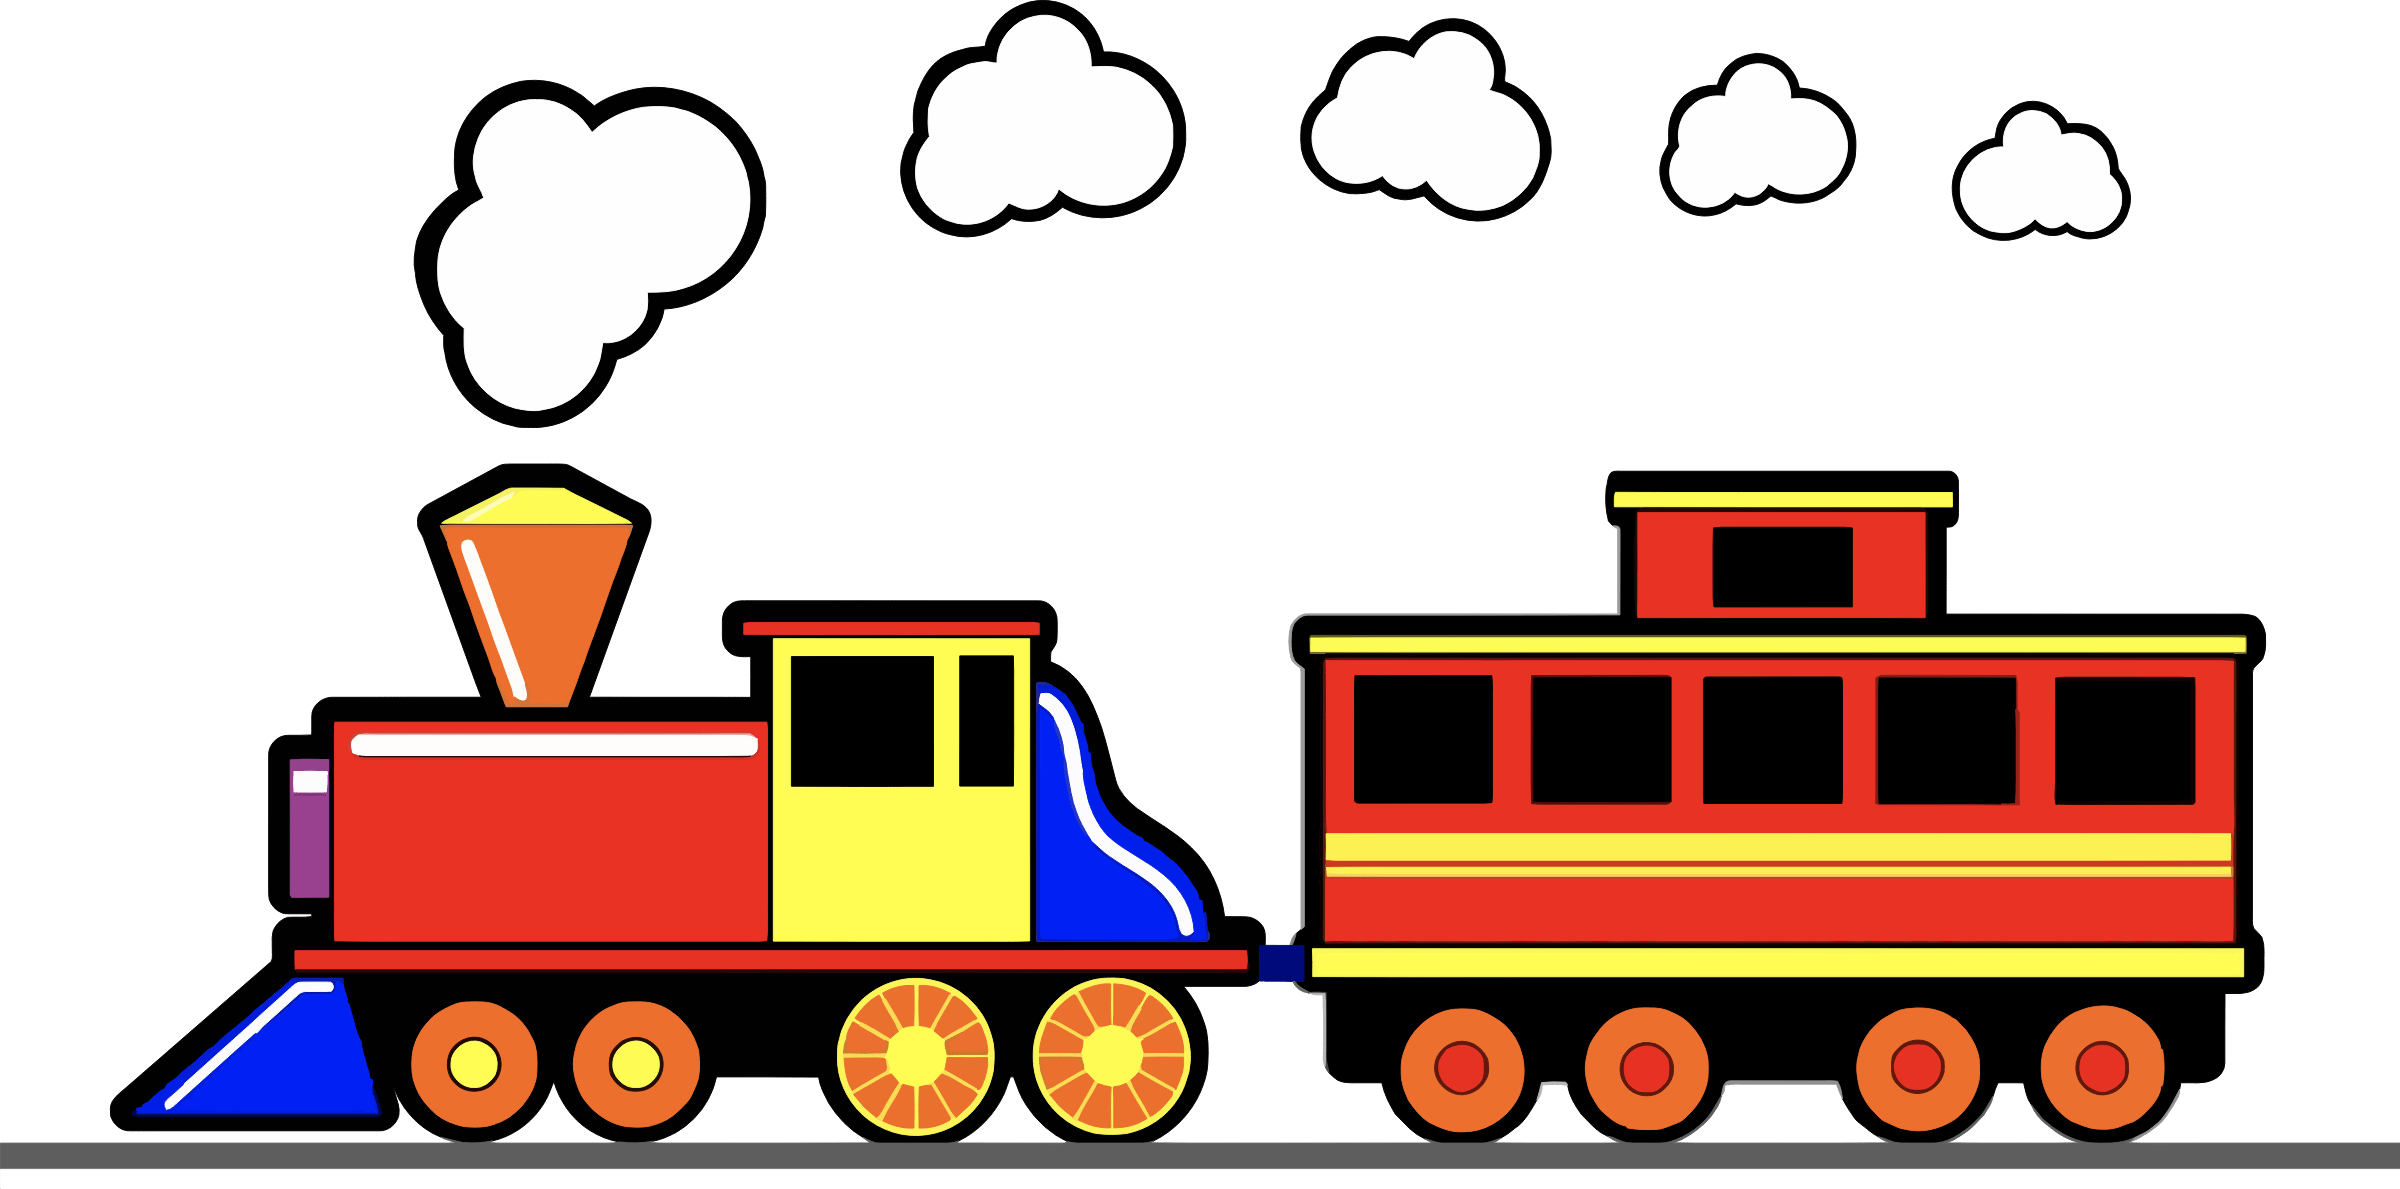 Toy train clipart 4 » Clipart Portal.